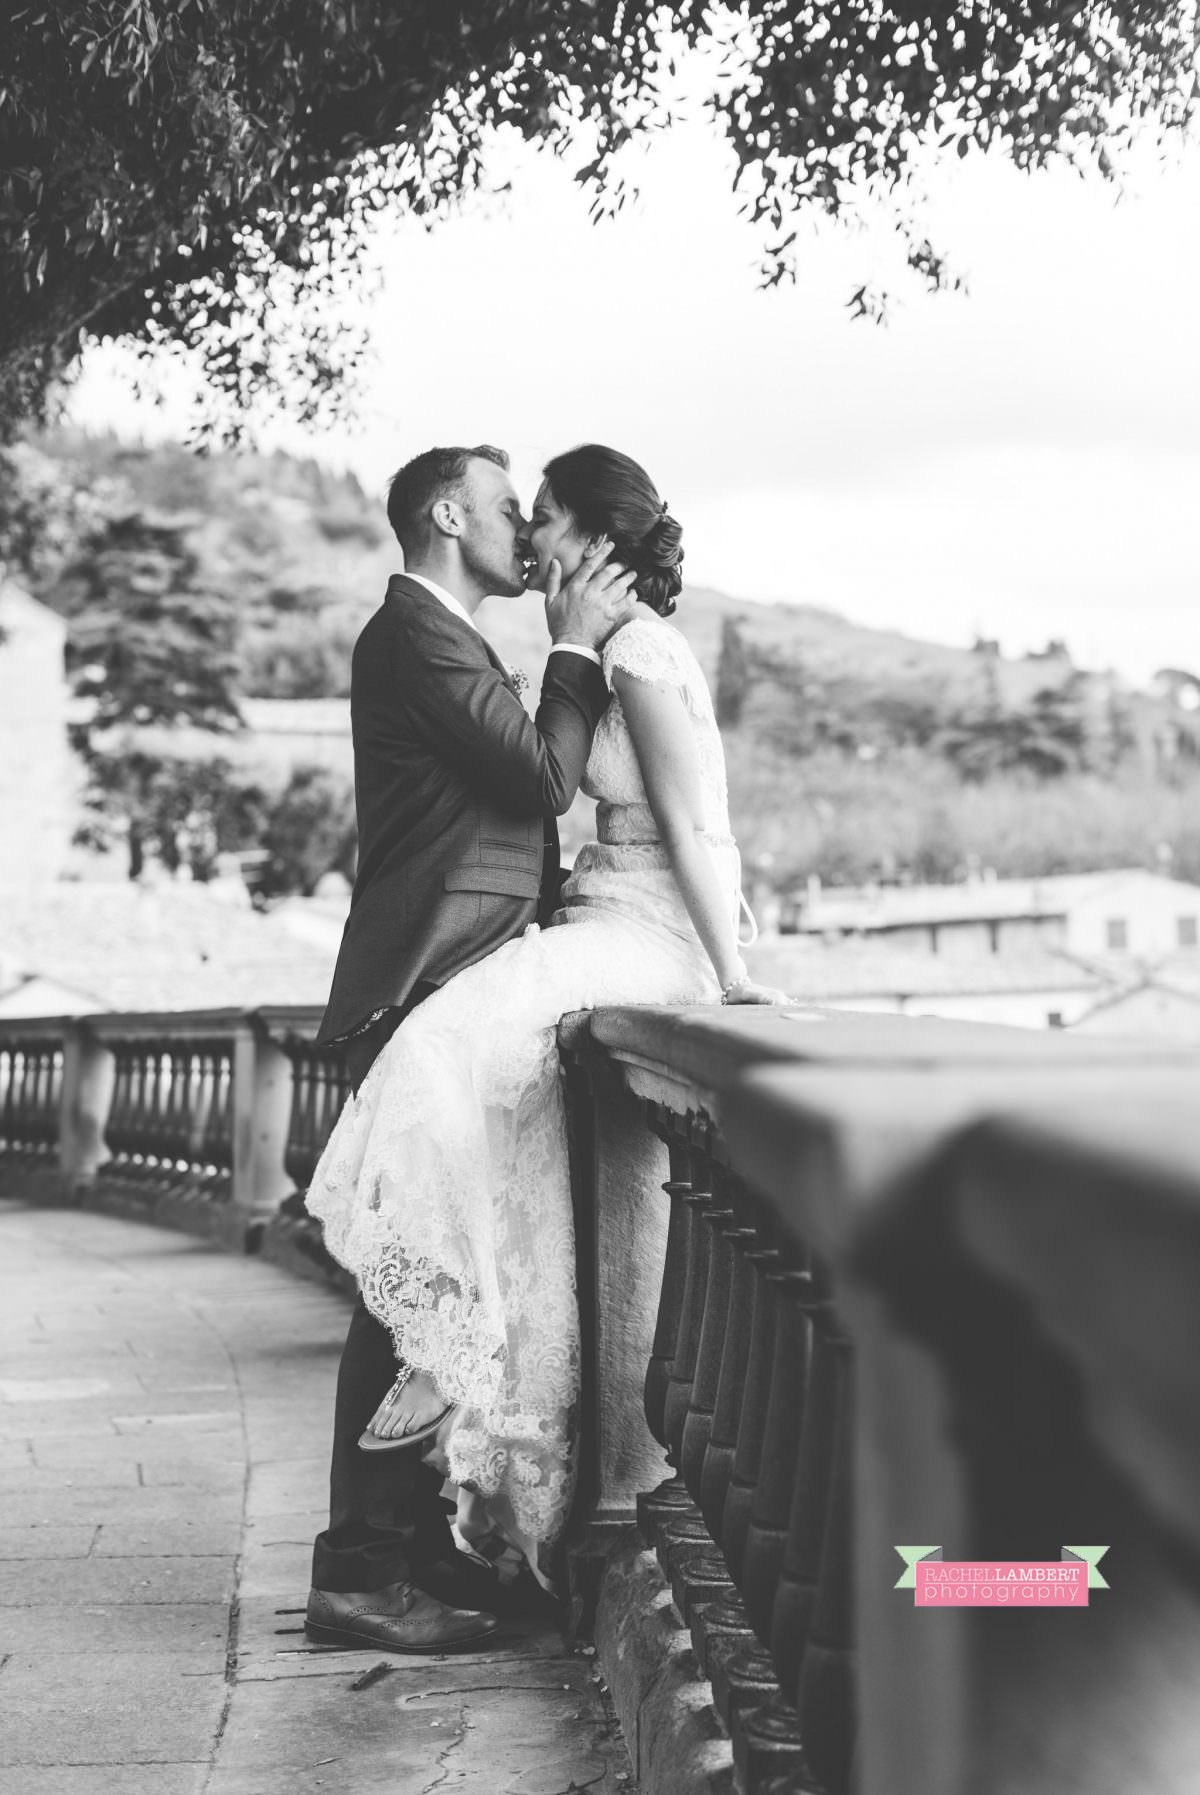 bride and groom portrait wedding in italy colour cortona tuscany black and white